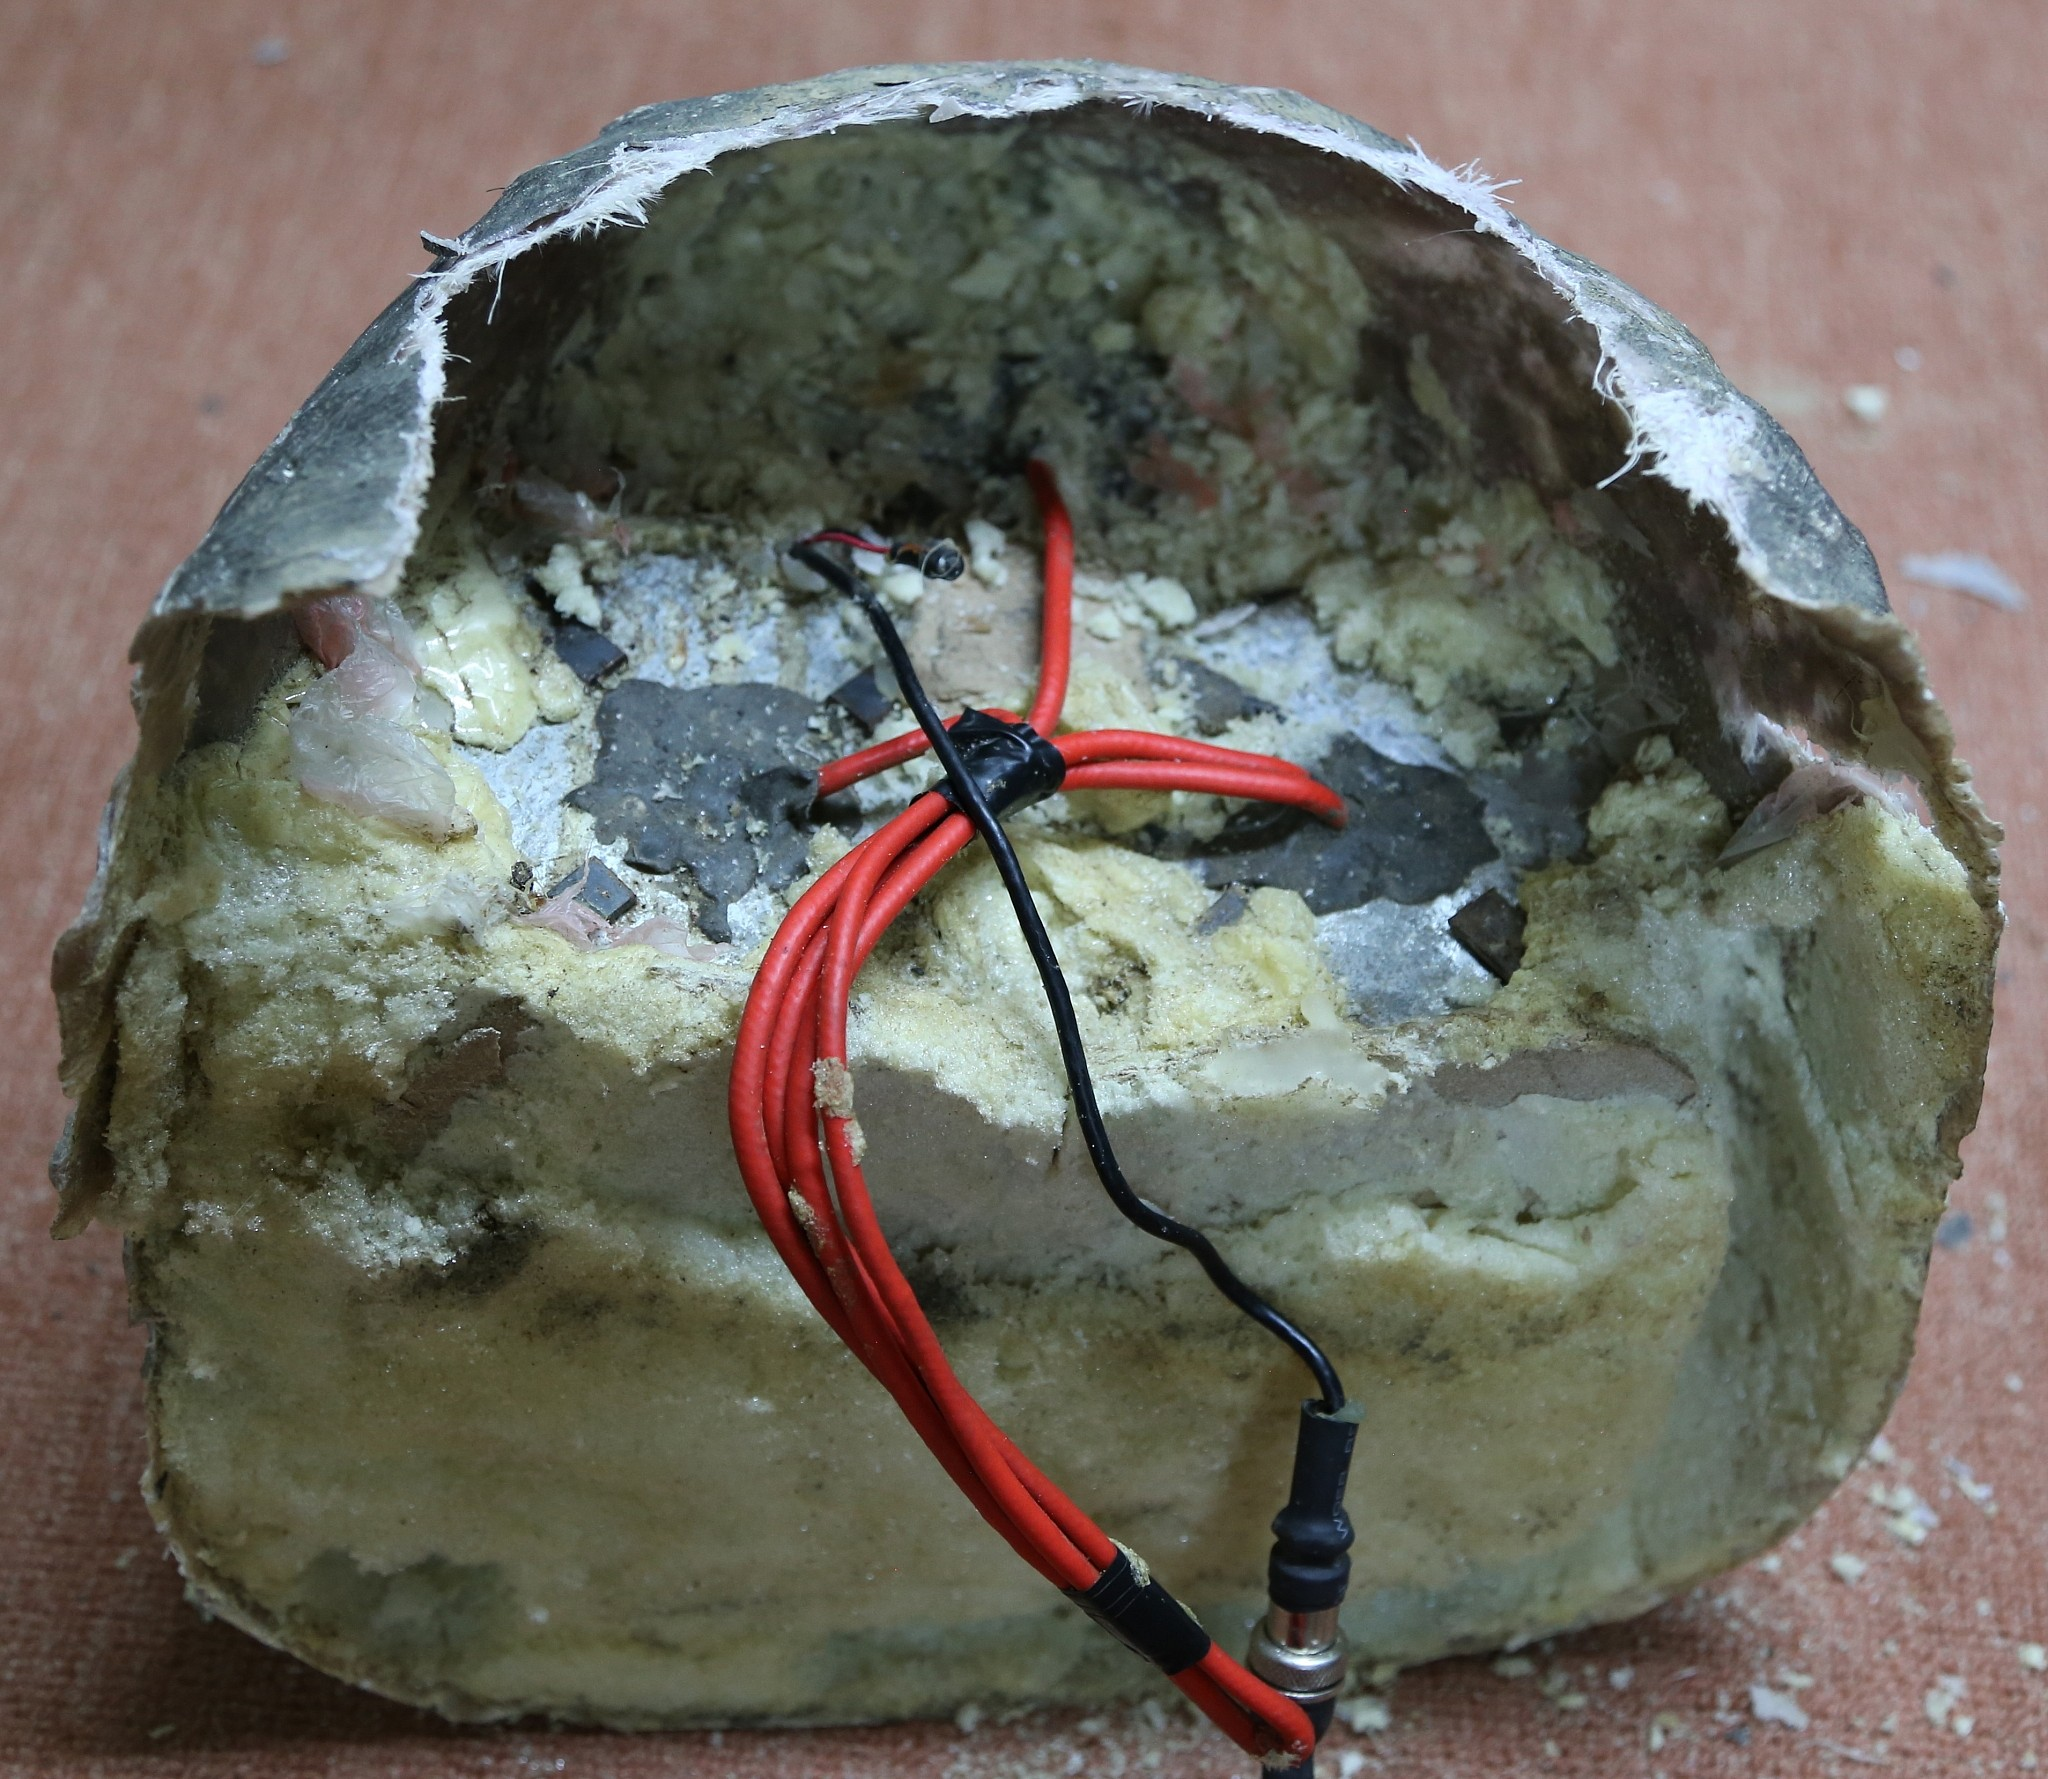 Bombs disguised as rocks in Yemen reportedly show Iran aid